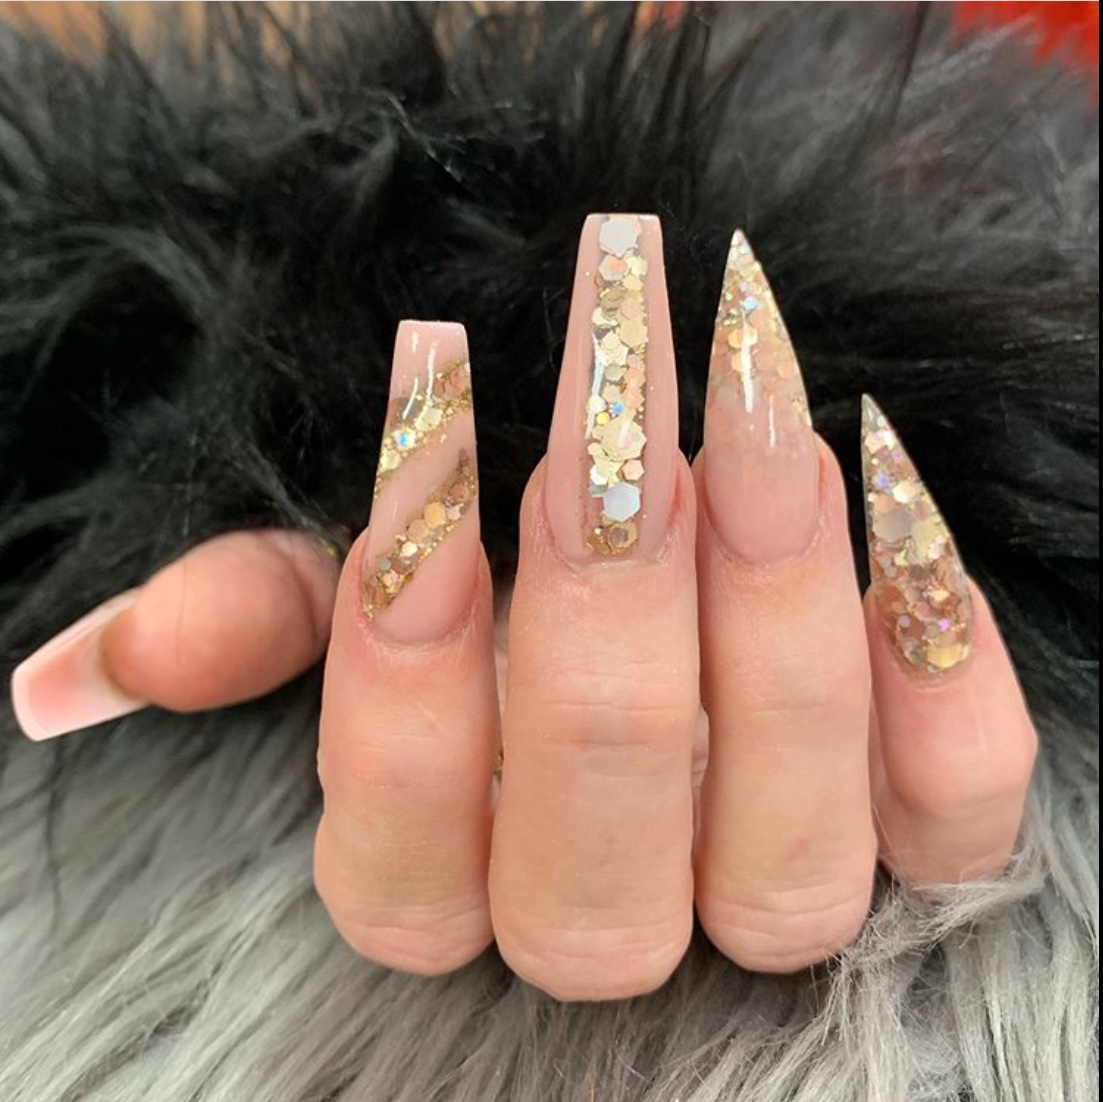 20 festive christmas nail designs for 2020 the glossychic the glossychic